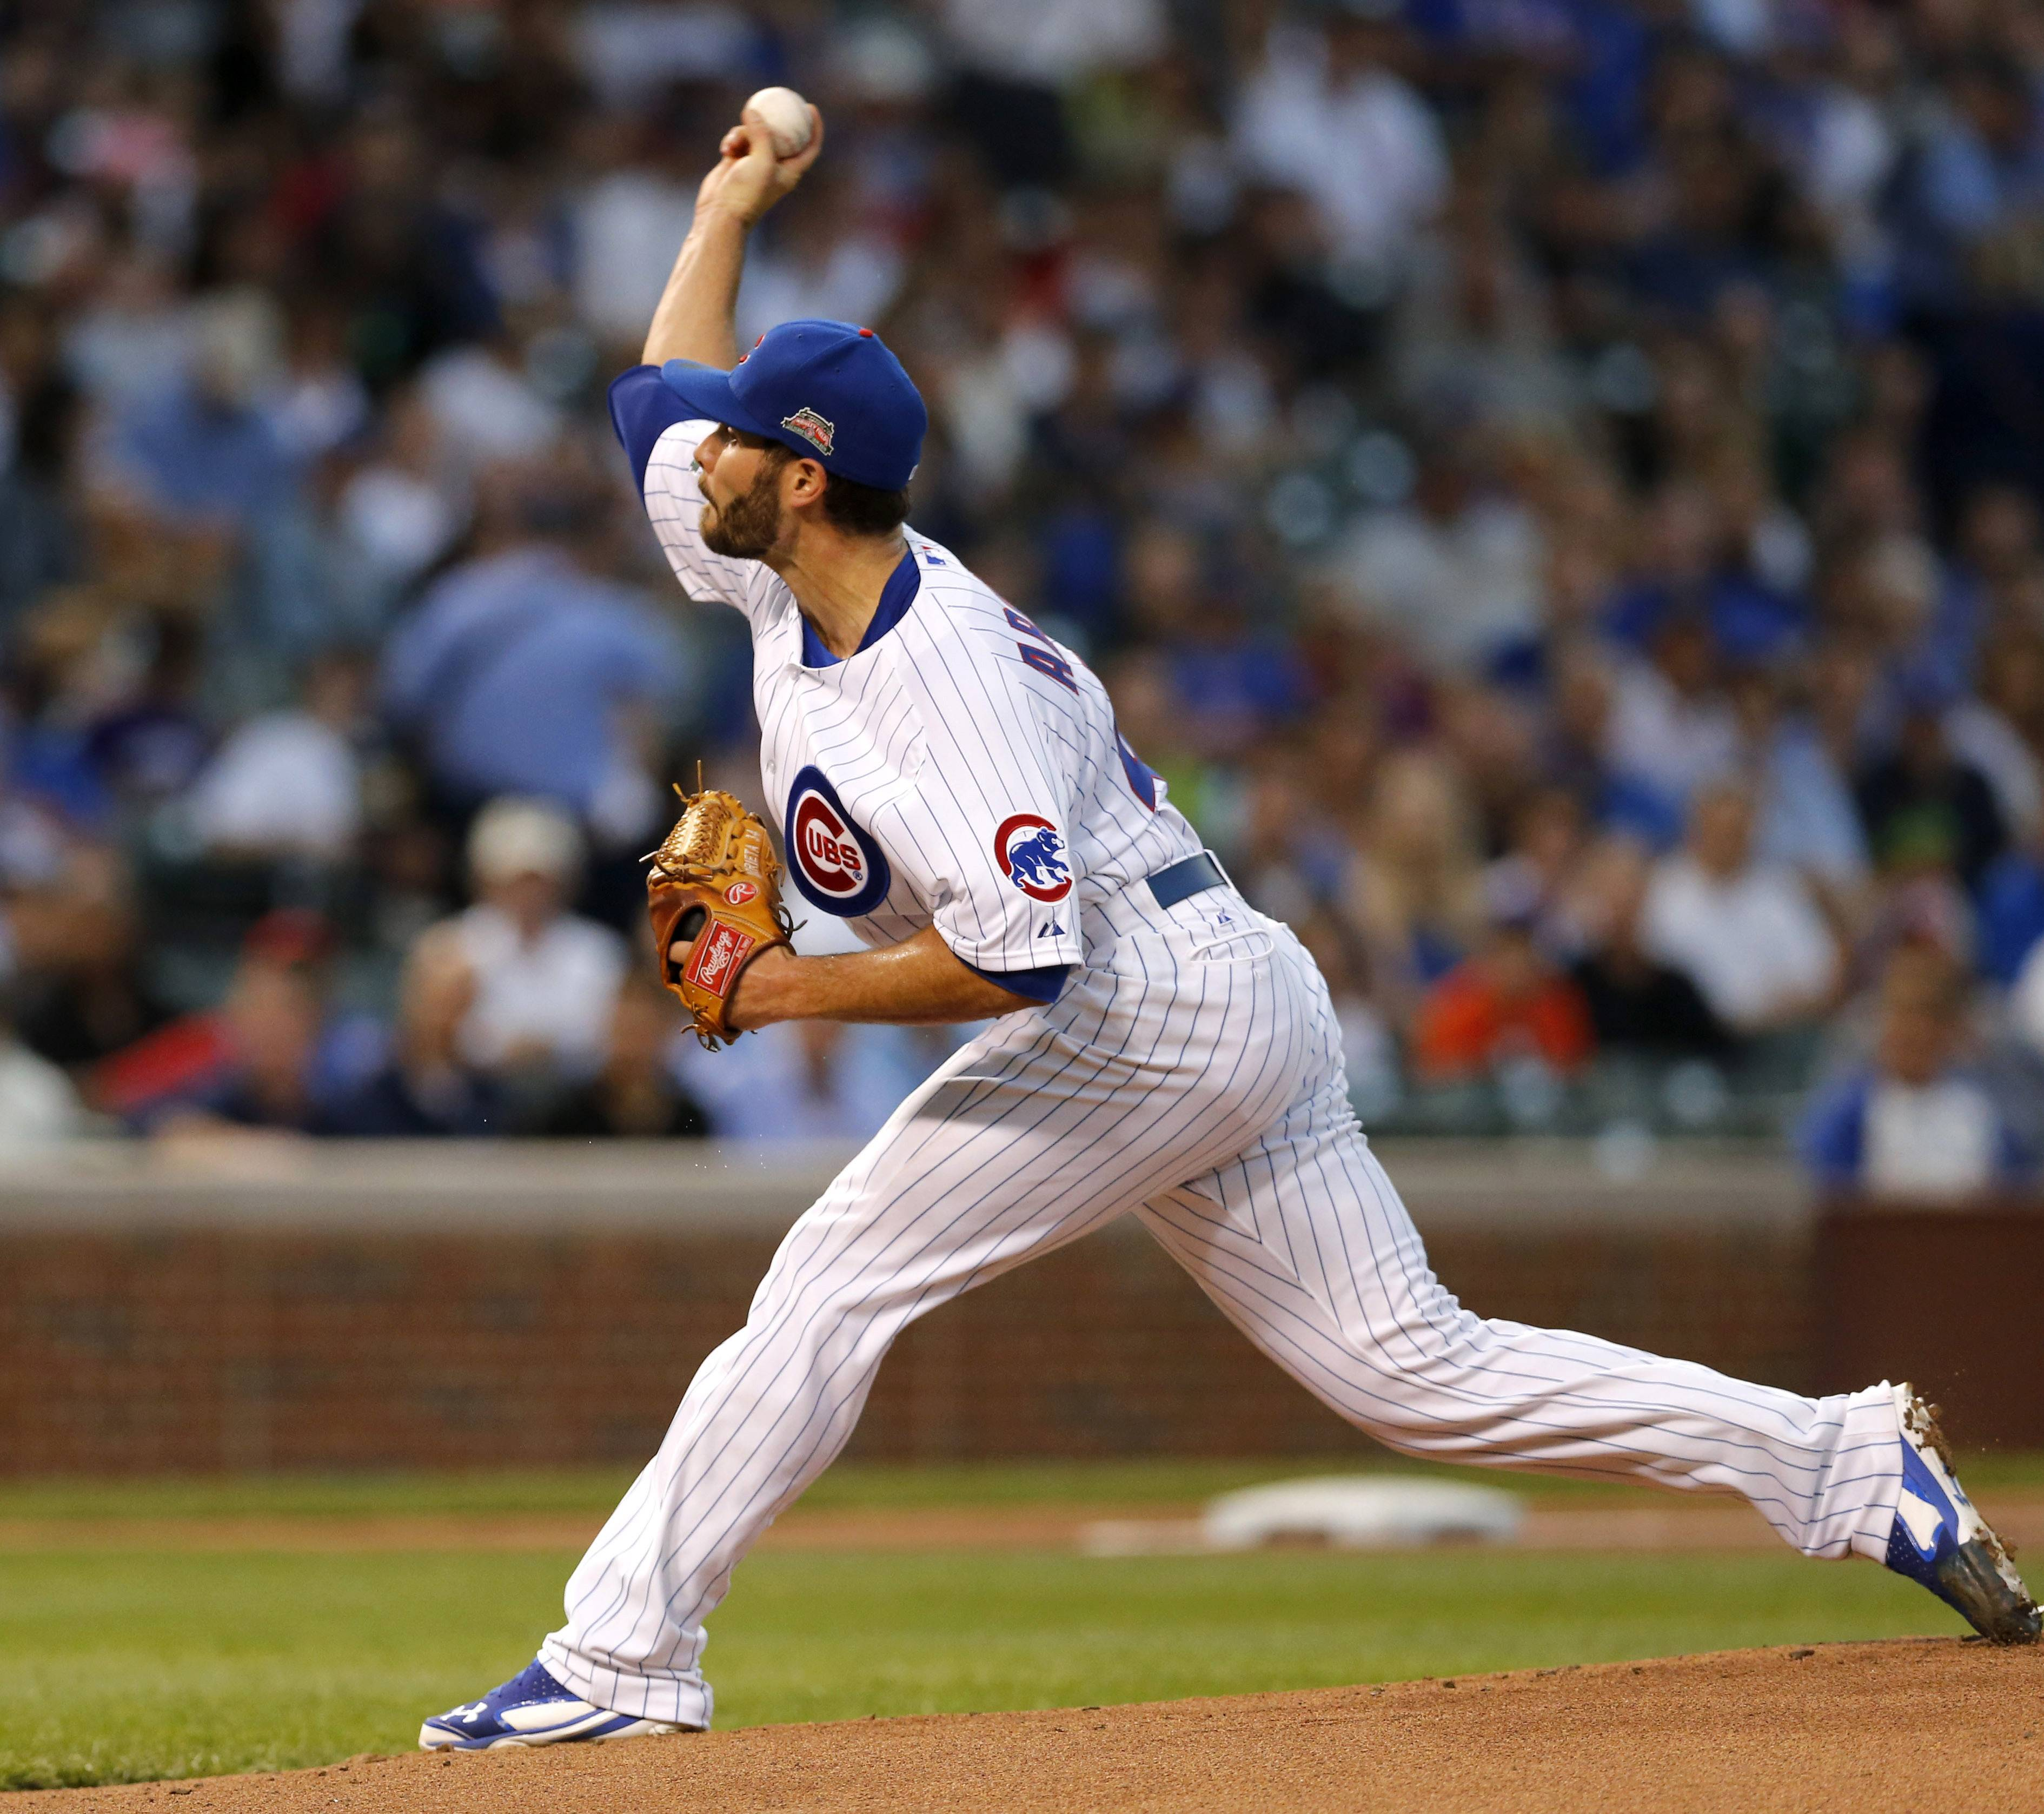 Cubs strike out against Brewers 3-1